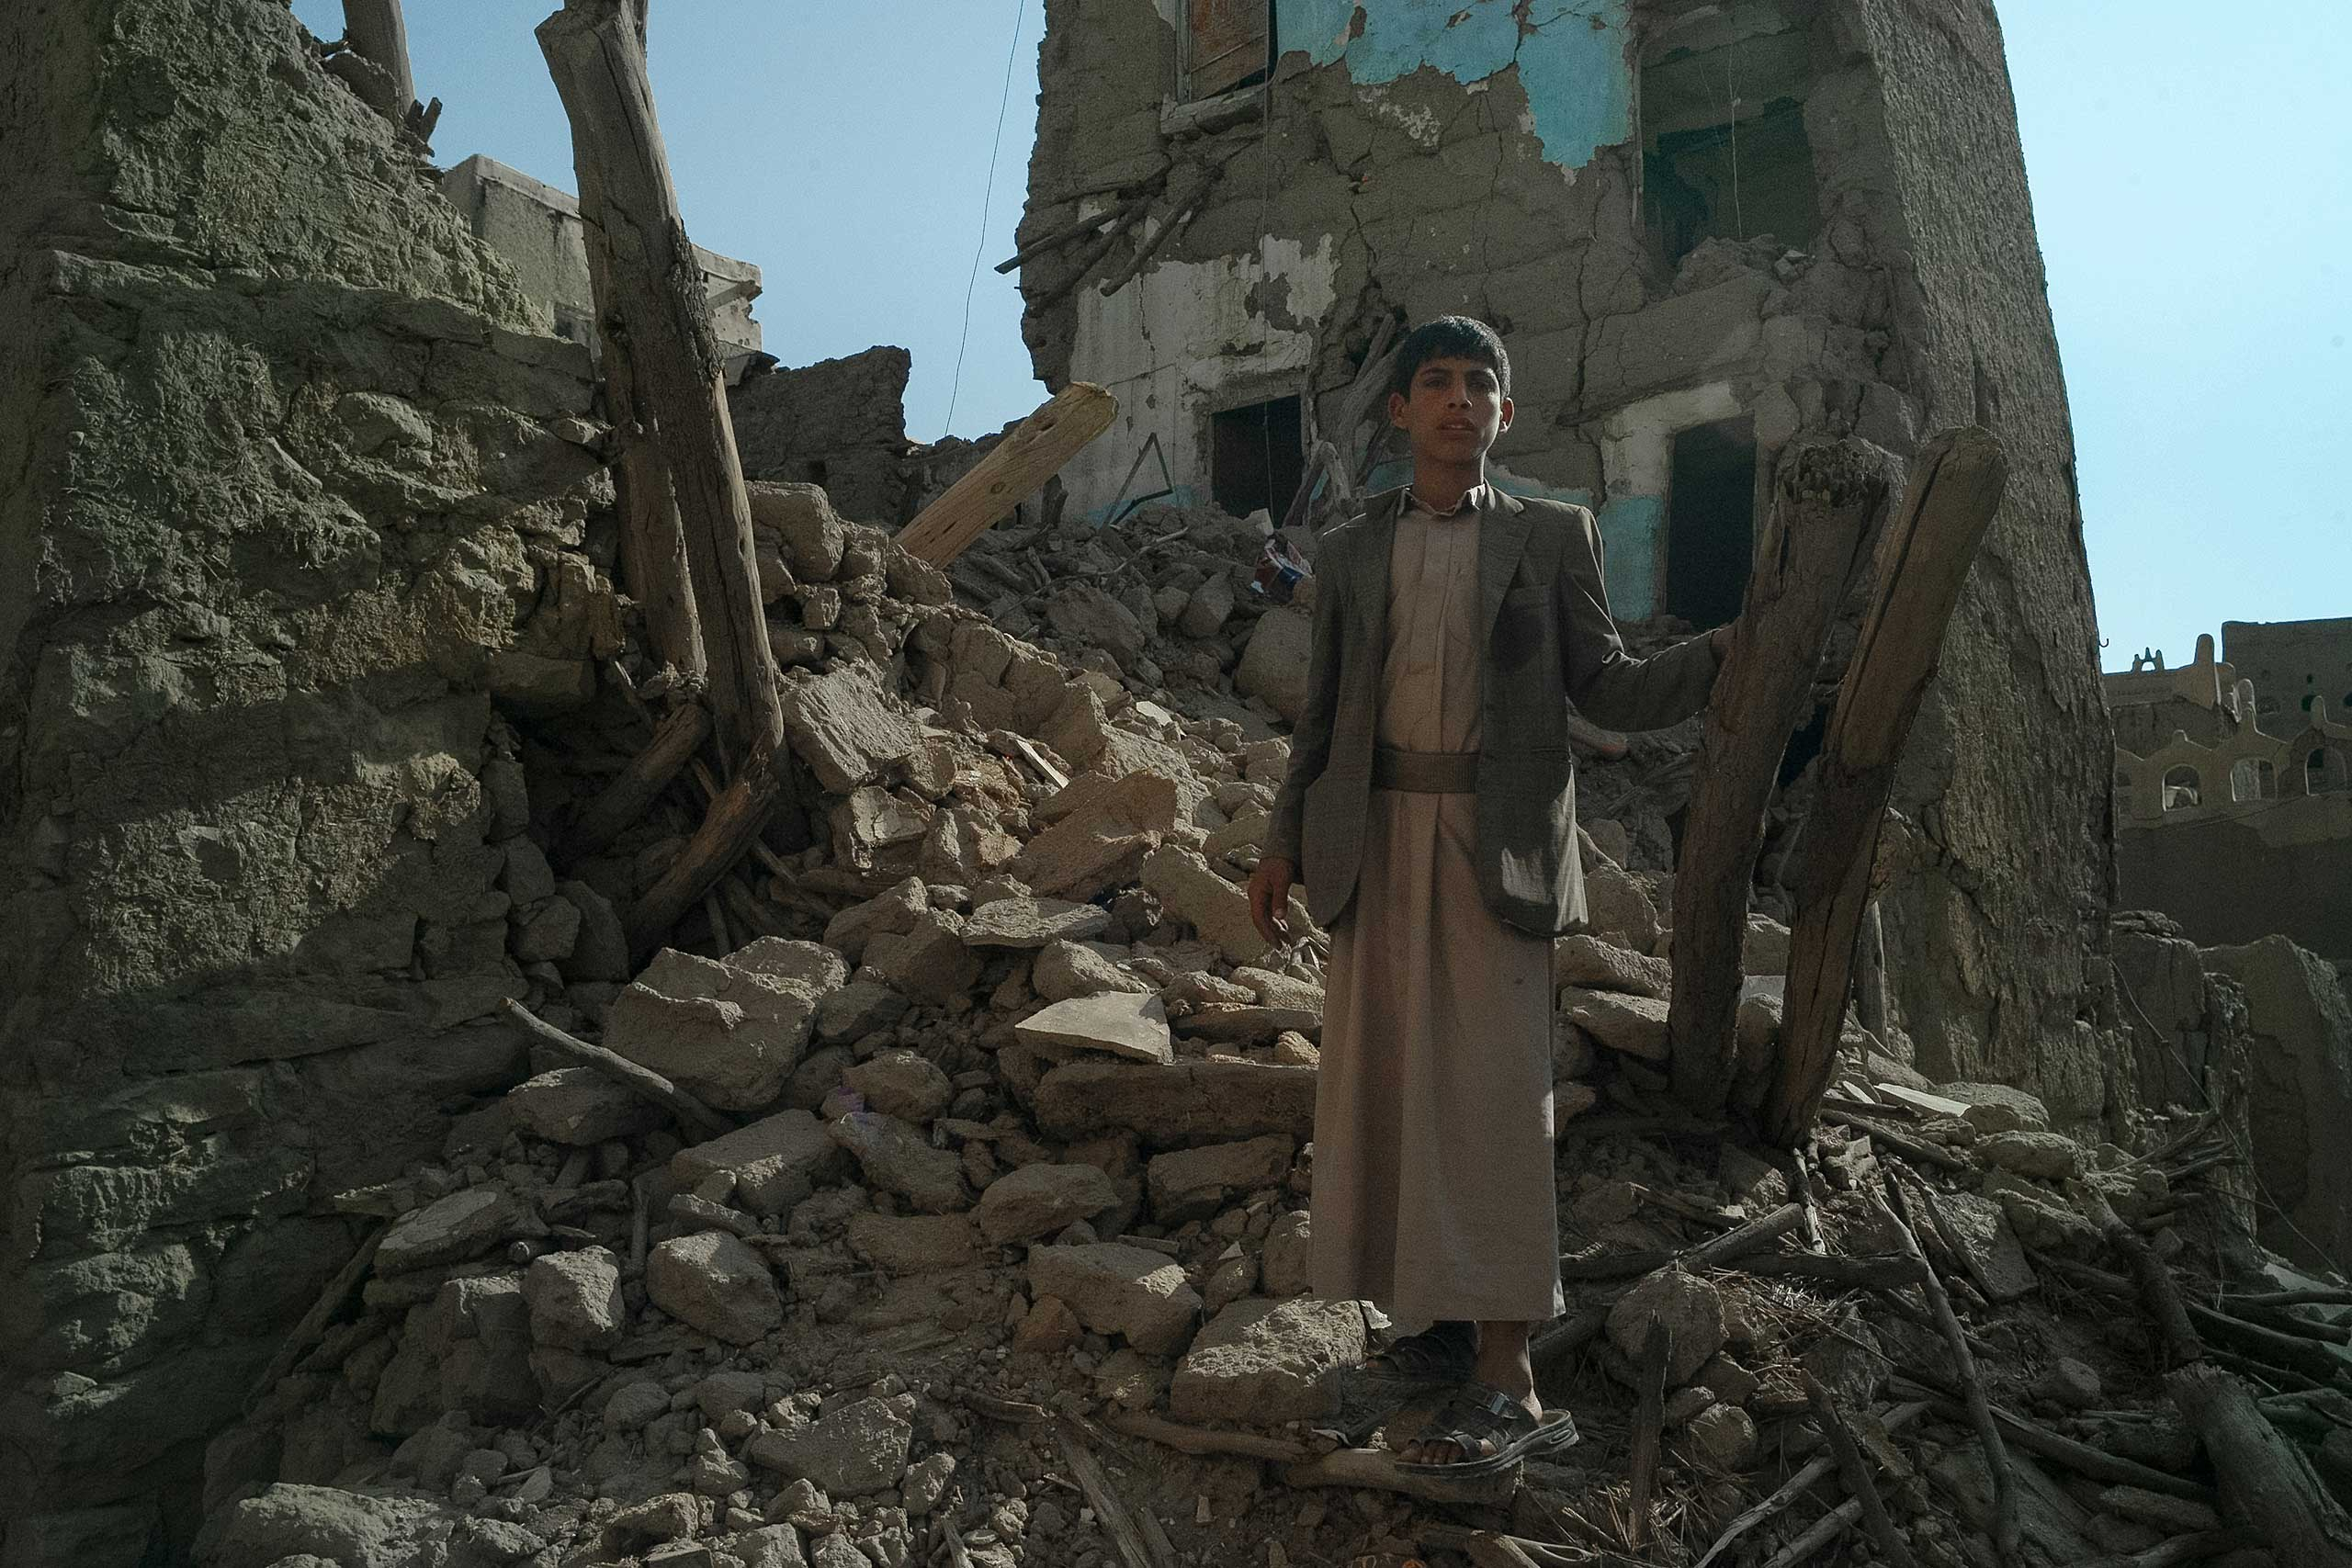 Abdul Bassat, 12, stands in the wreckage of his aunt's former home. The neighborhood of ancient mud brick  buildings on the outskirts of Saada city was destroyed by several Saudi-led airstrikes in May, 2015. Saada province is the stronghold of the Houthi rebellion movement, Aug. 2015.